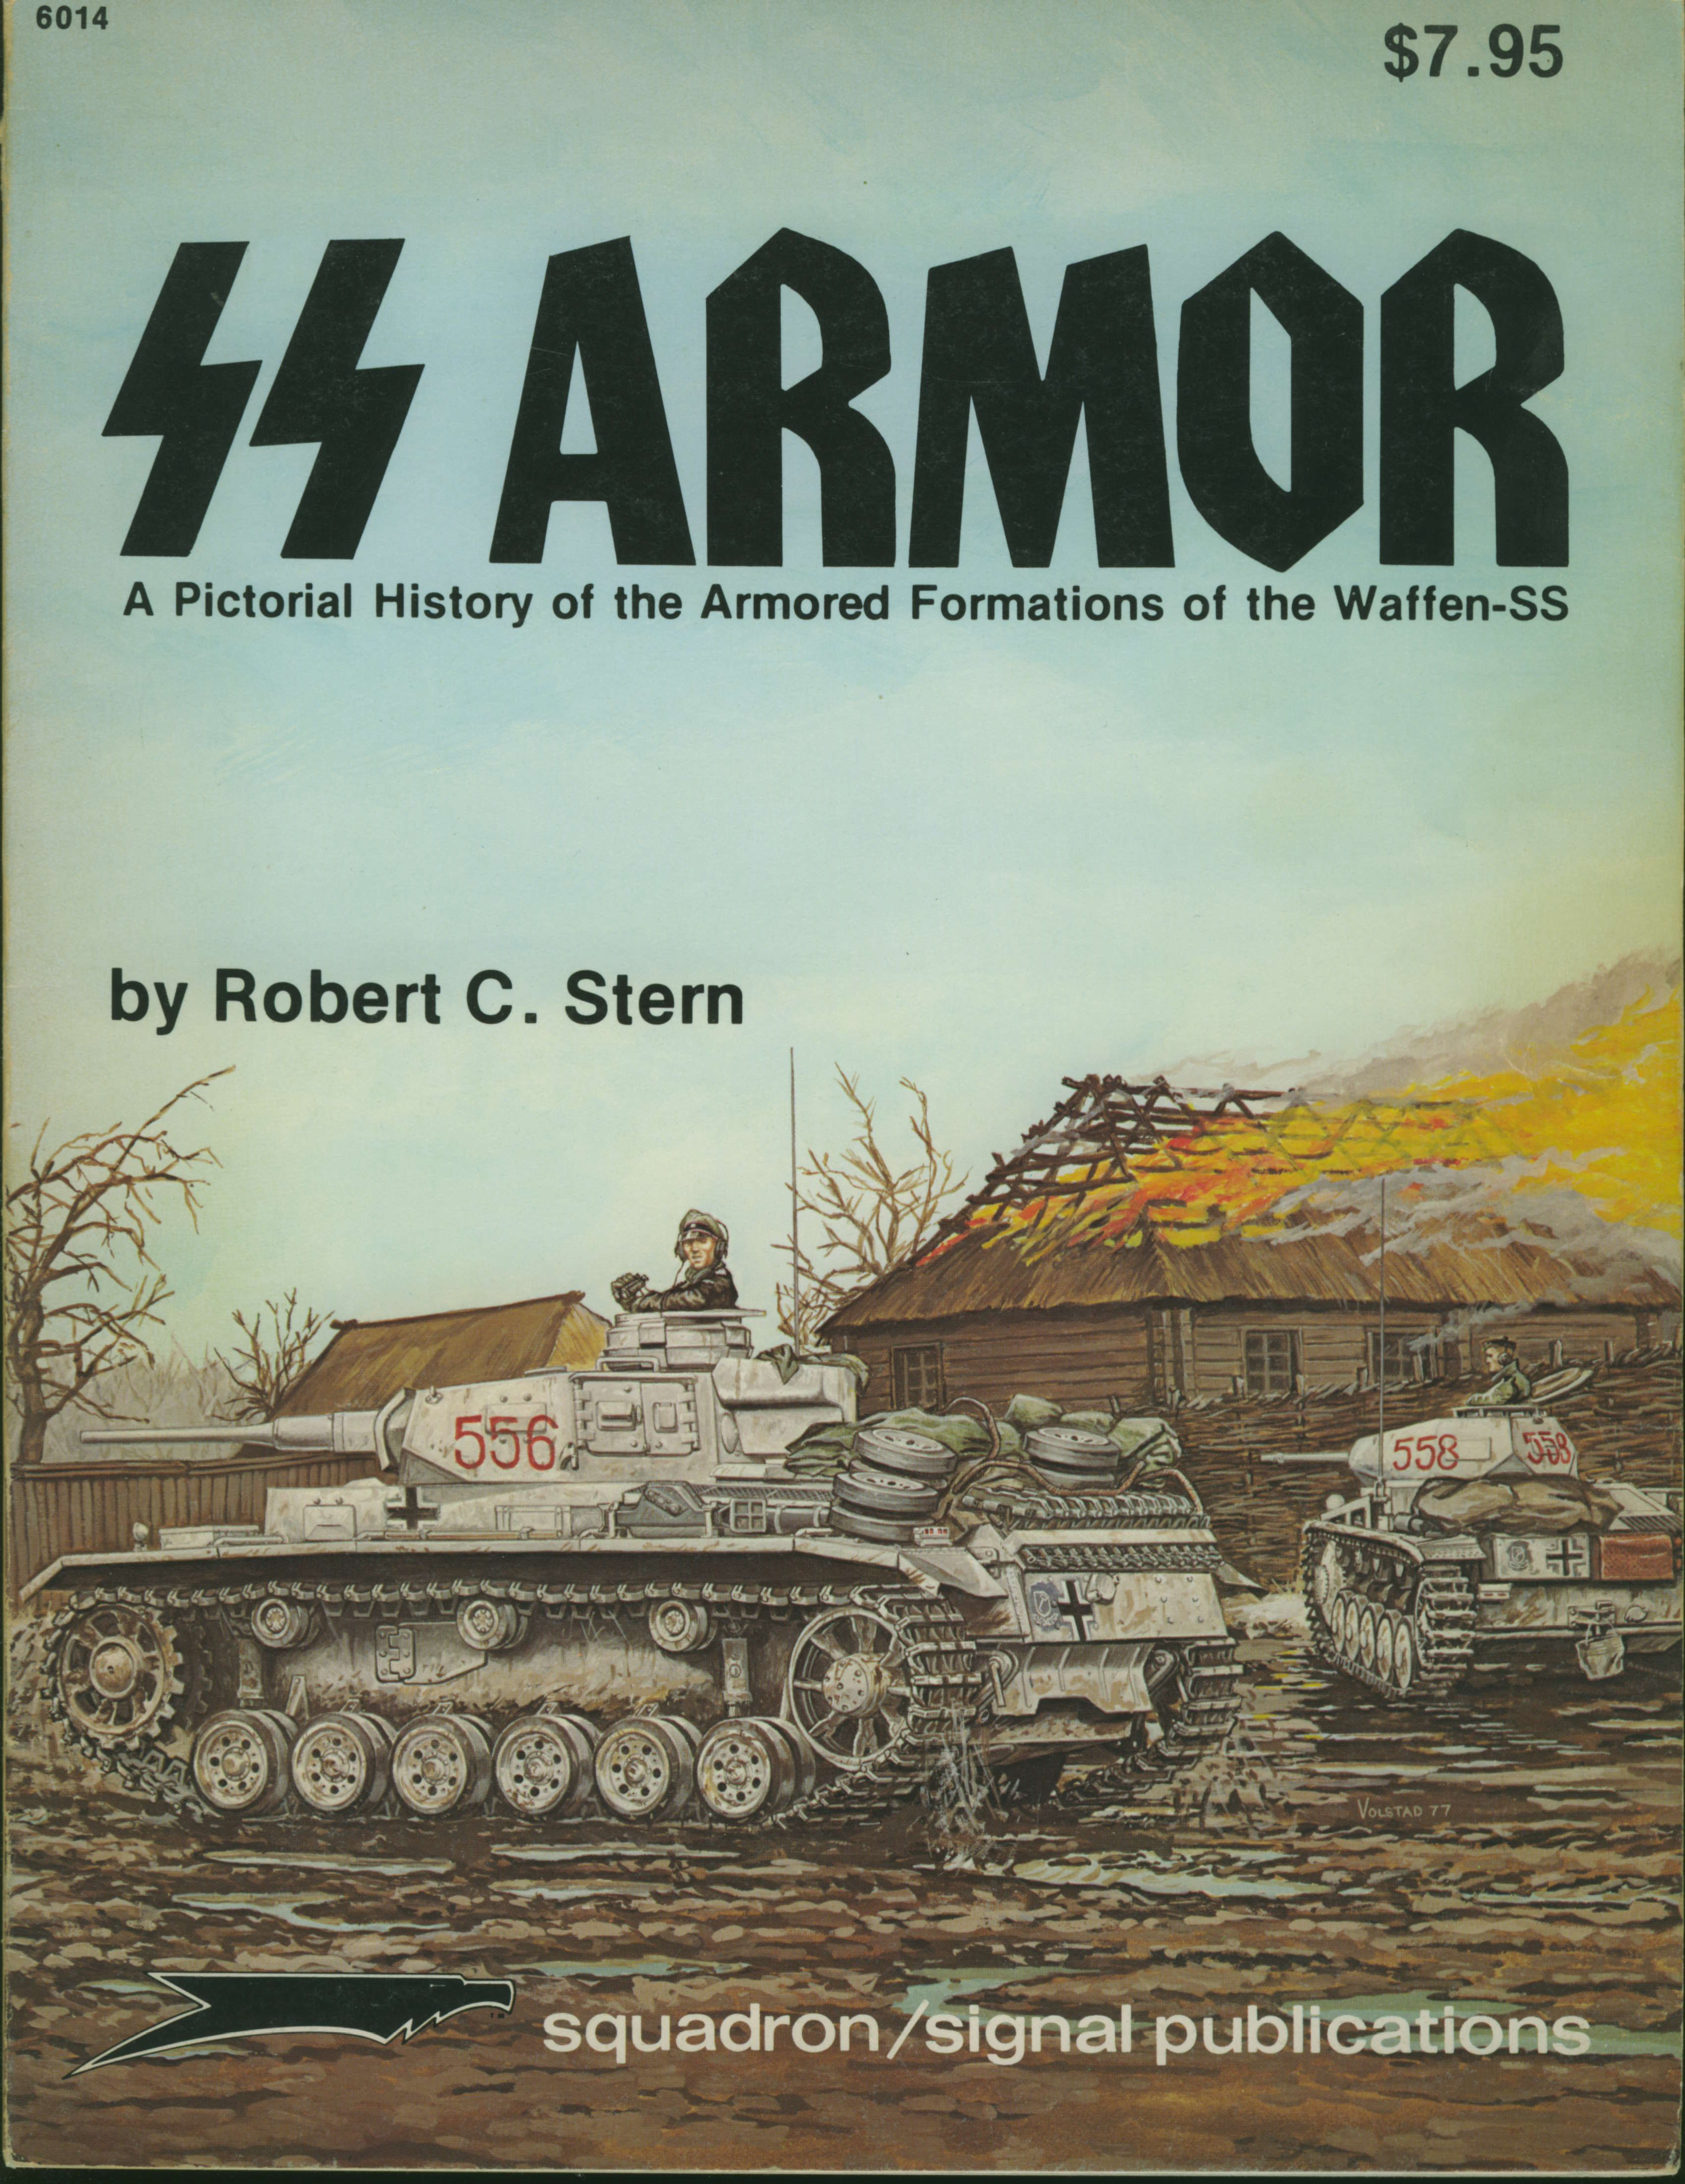 №6014 SS Armor A Pictorial History of the Armored Formations of the Waffen-SS.jpg